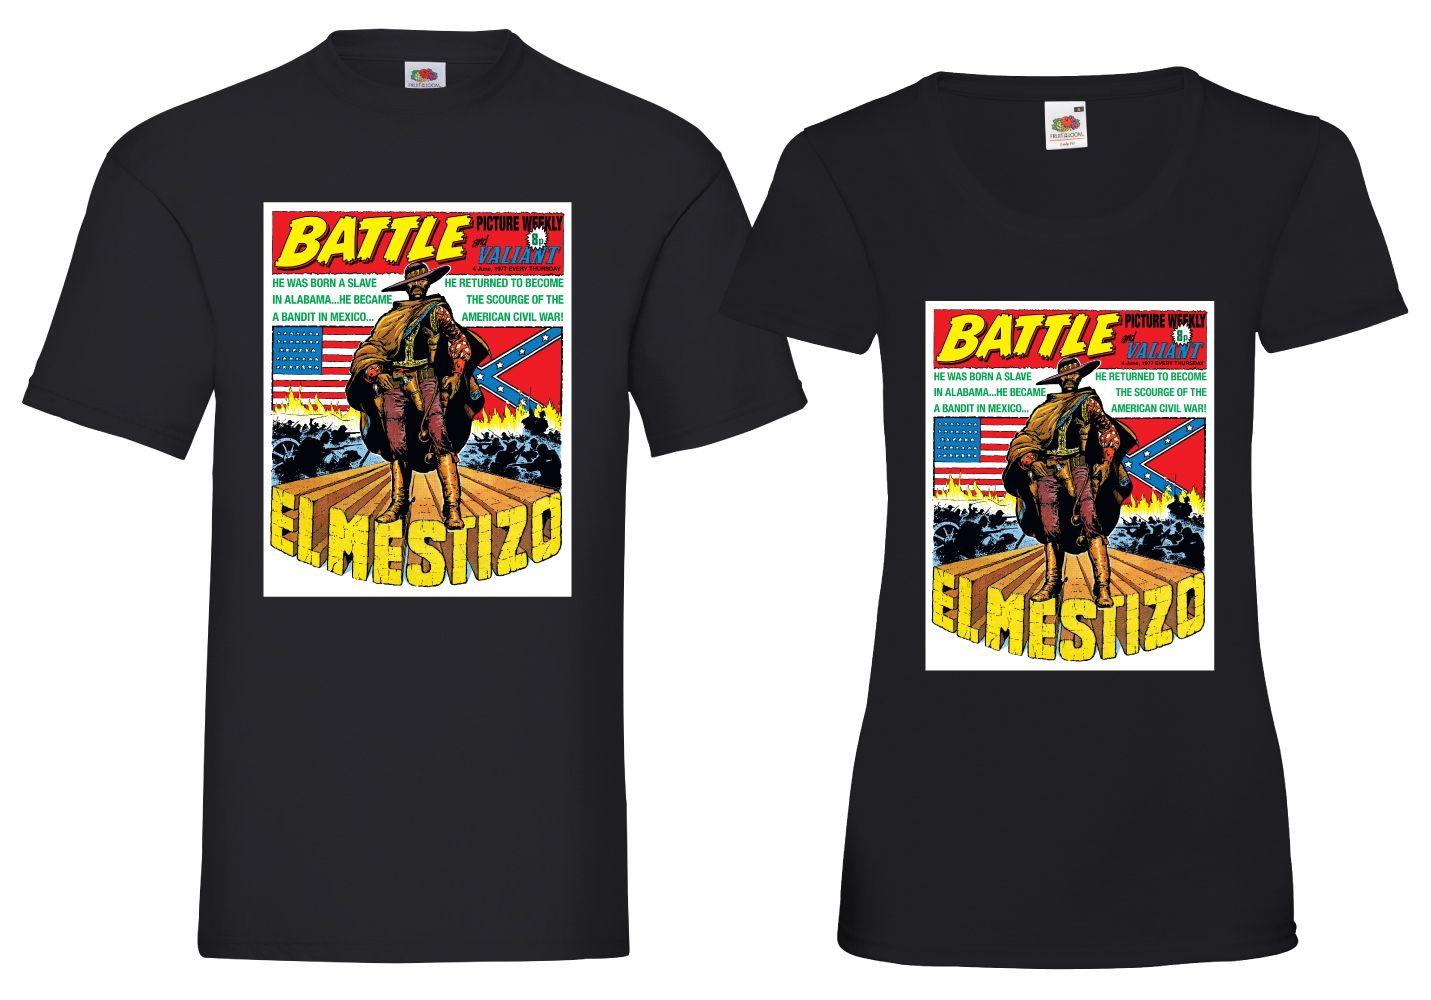 El Mestizo Battle Cover T-shirt